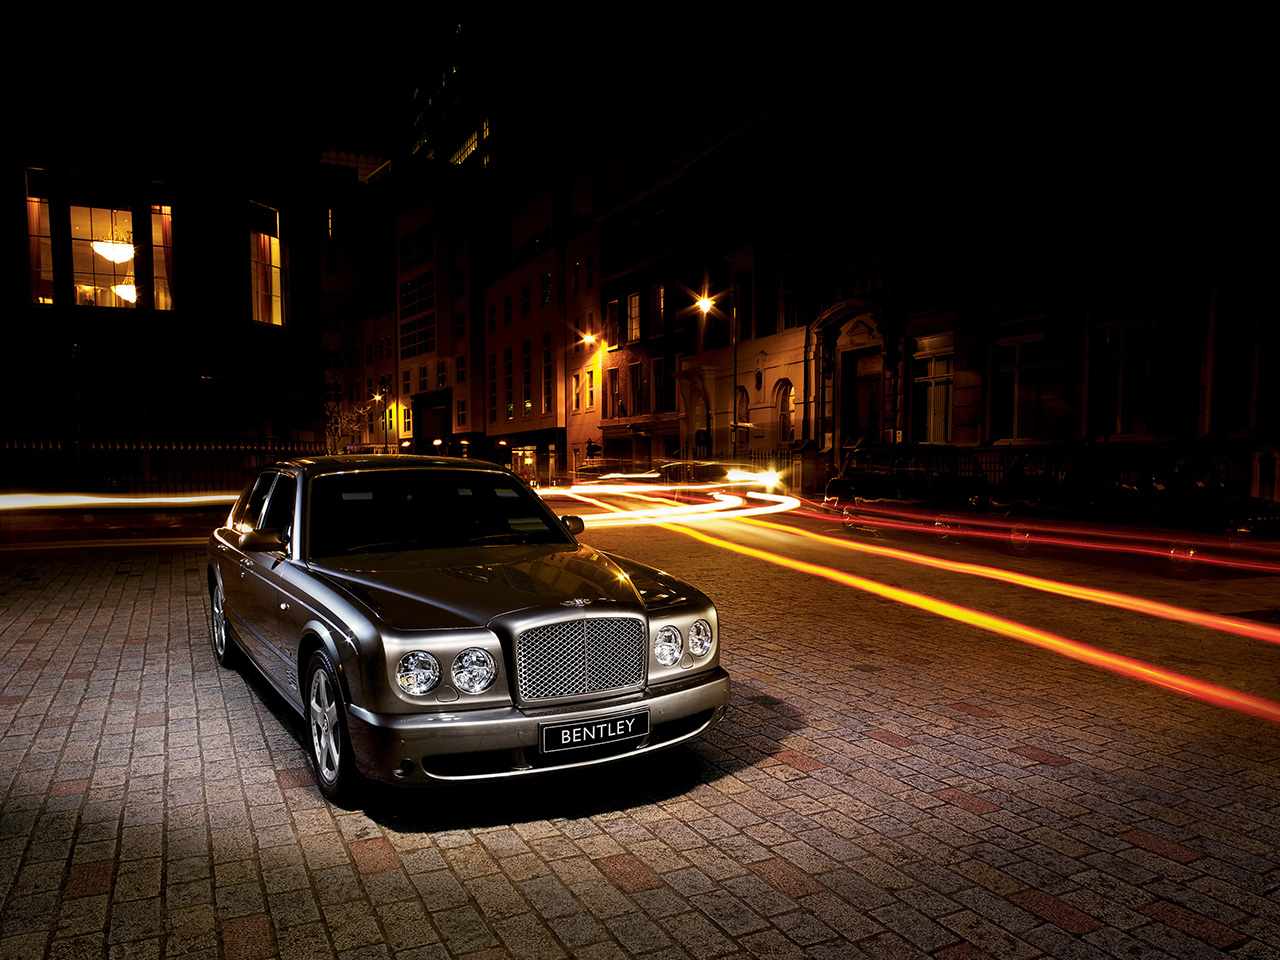 2007-Bentley-Arnage-Front-Angle-1280x960-1-